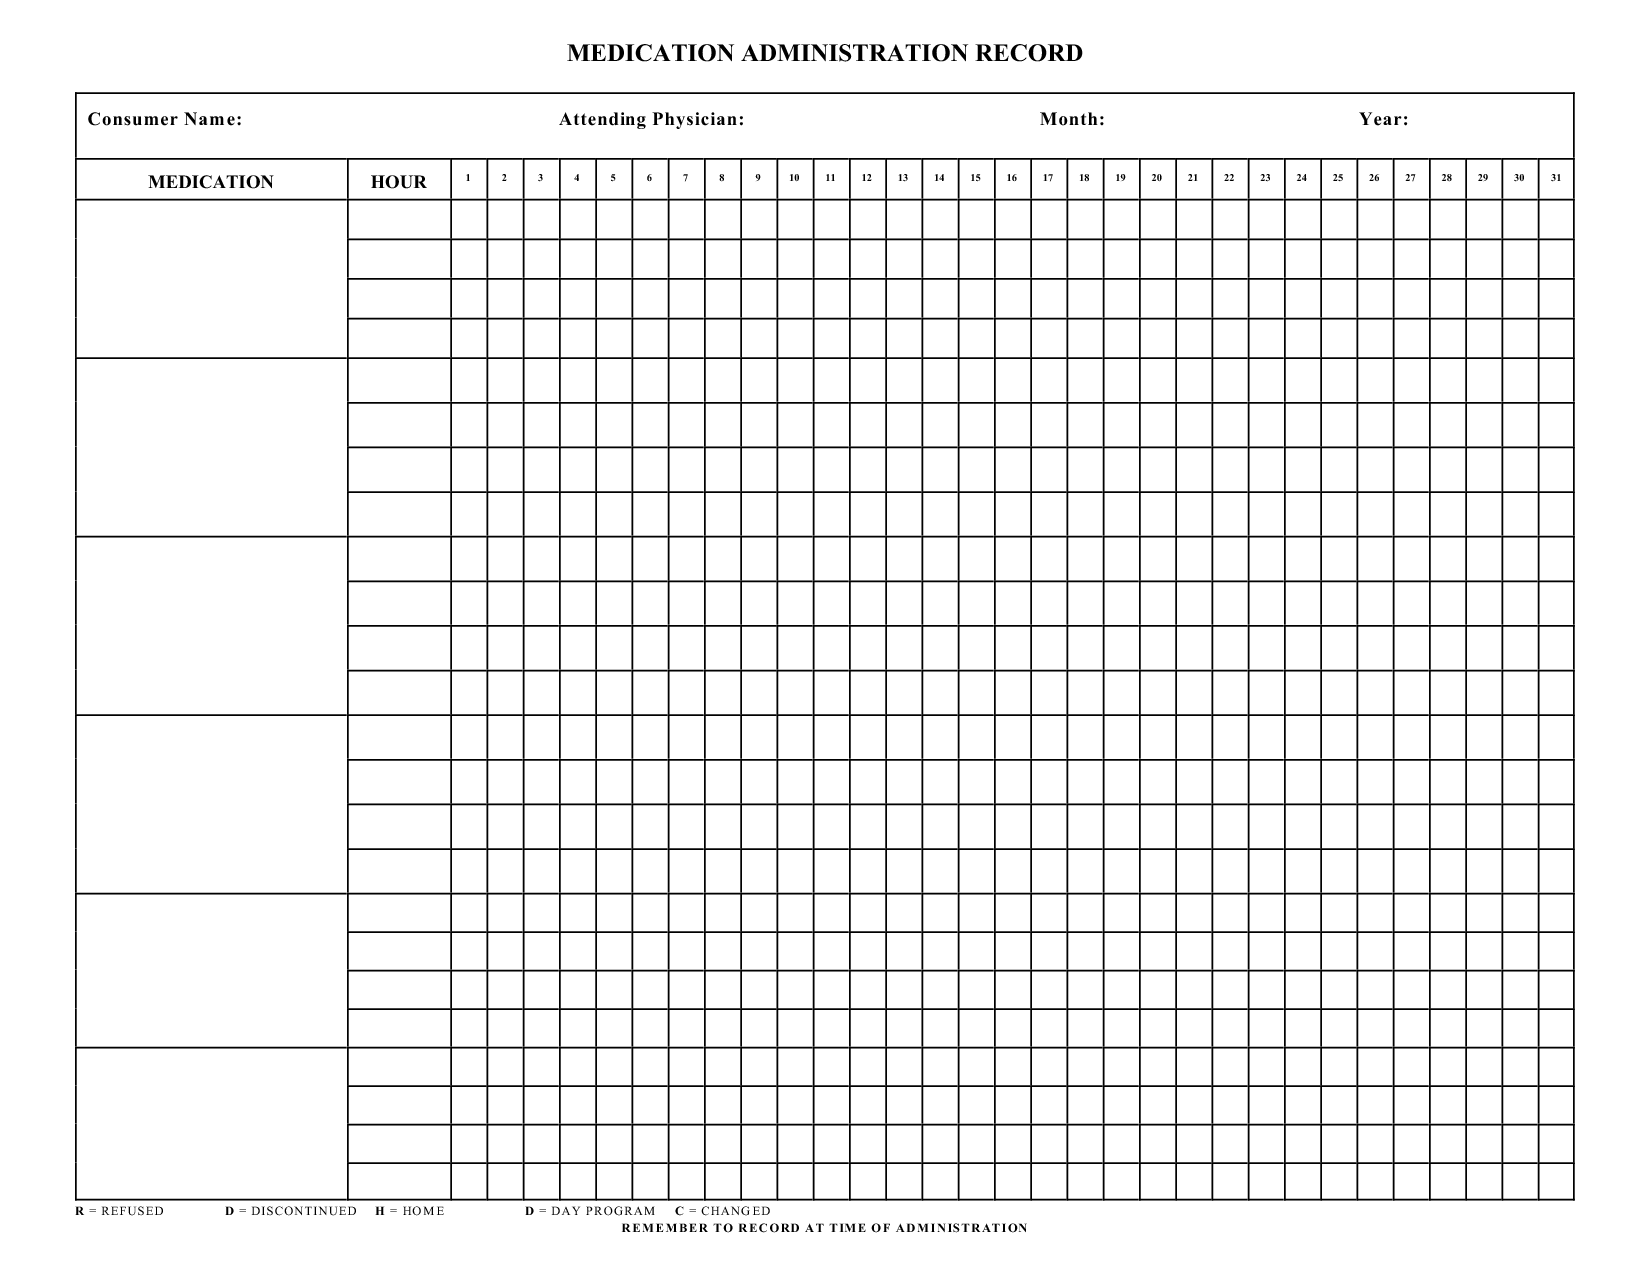 BlankMedicationAdministrationRecordTemplate  Mrs Summers